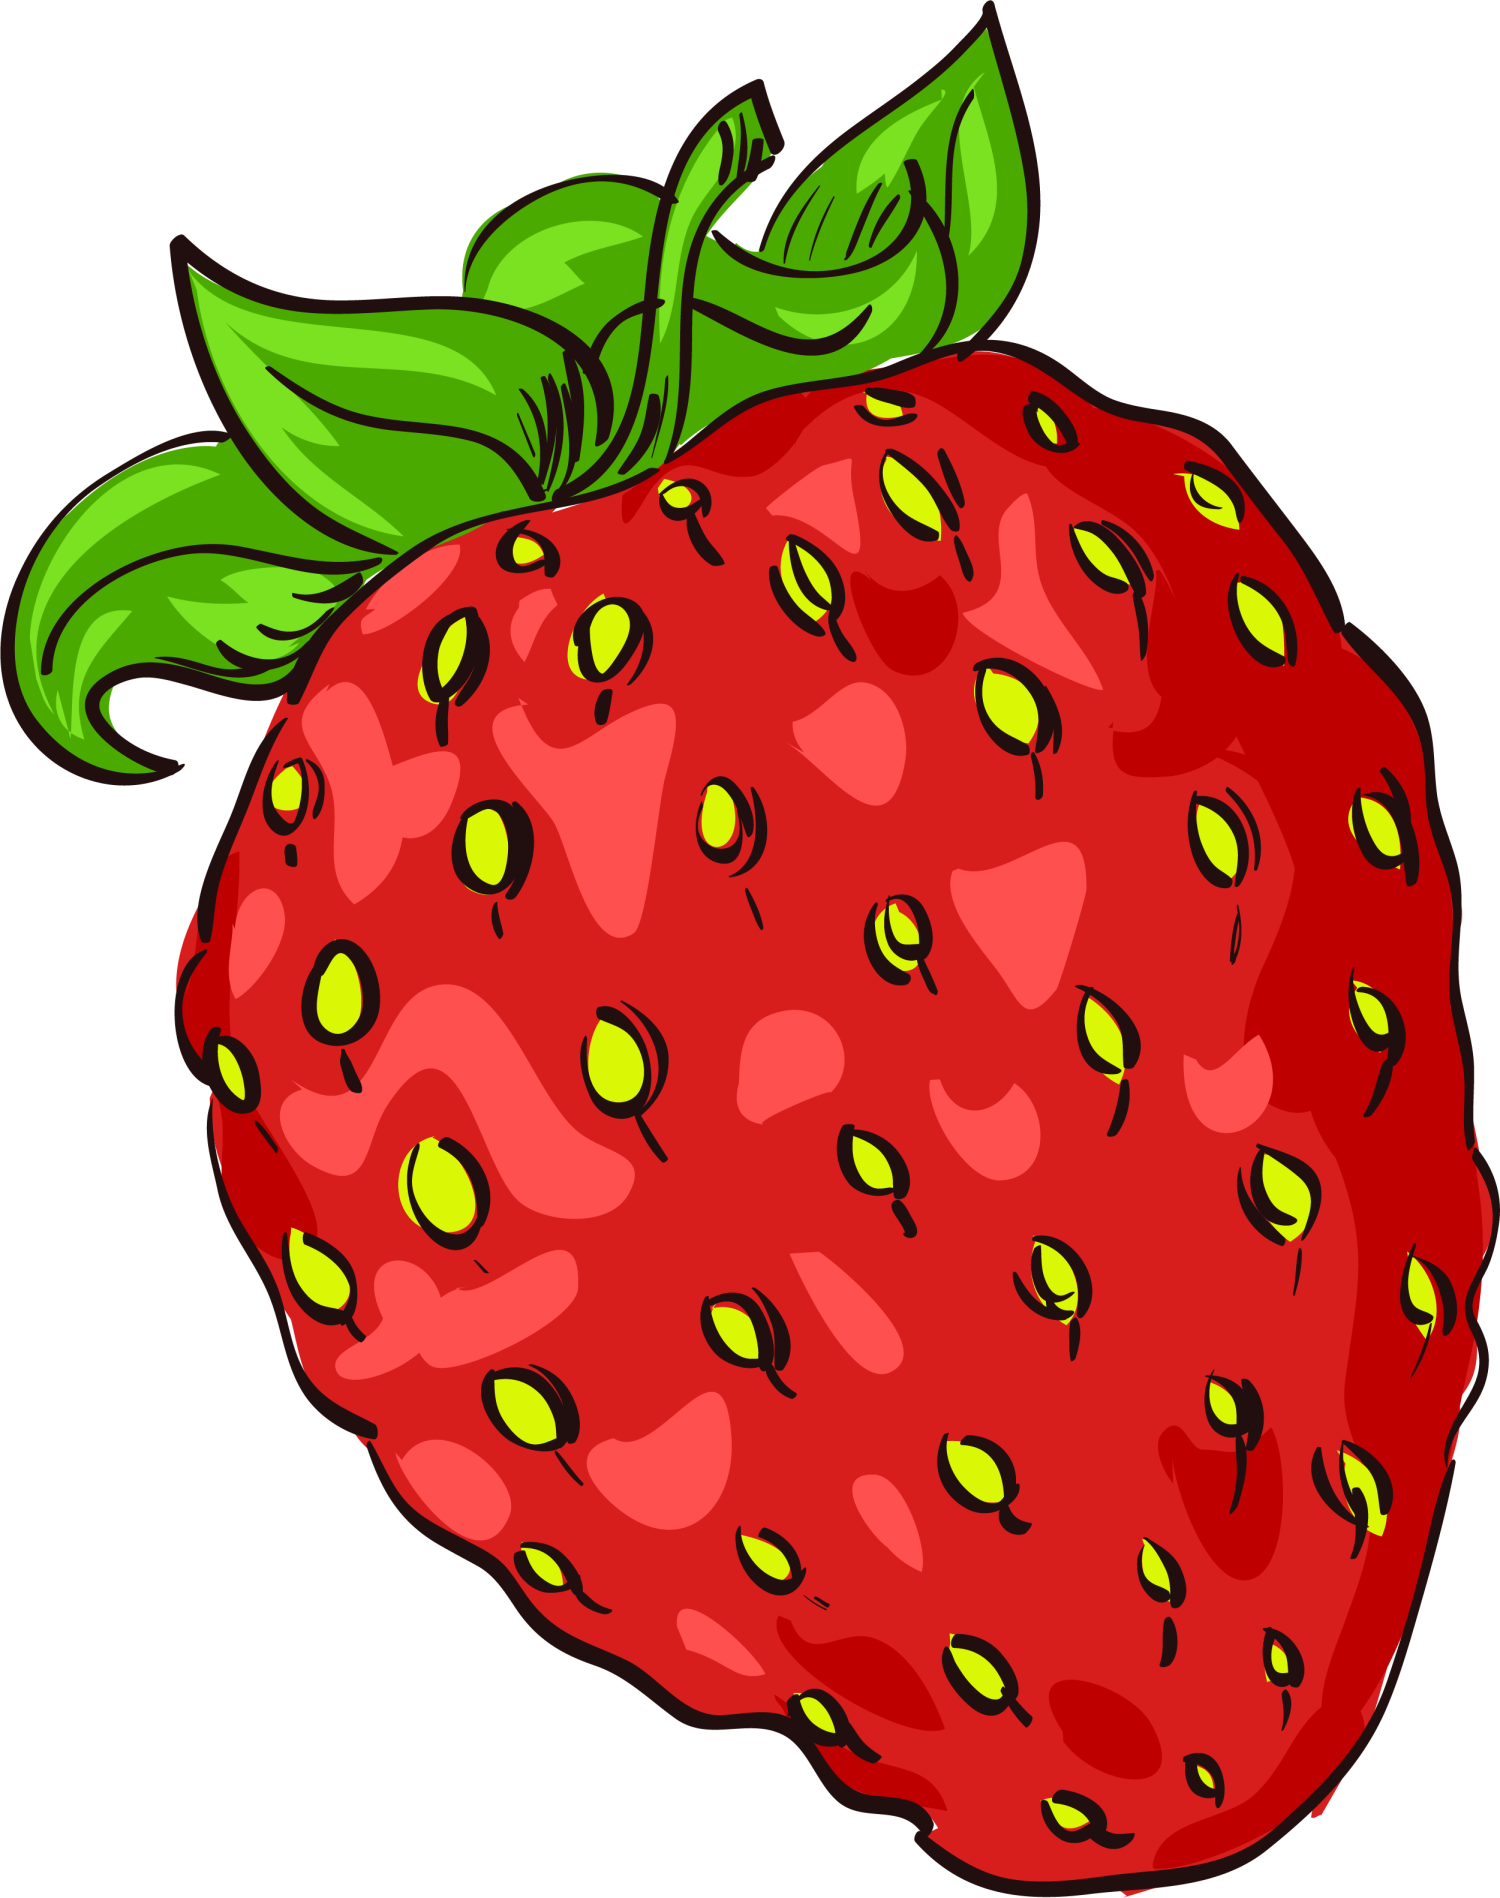 Strawberry accessory fruit cartoon. Strawberries clipart fruitsblack